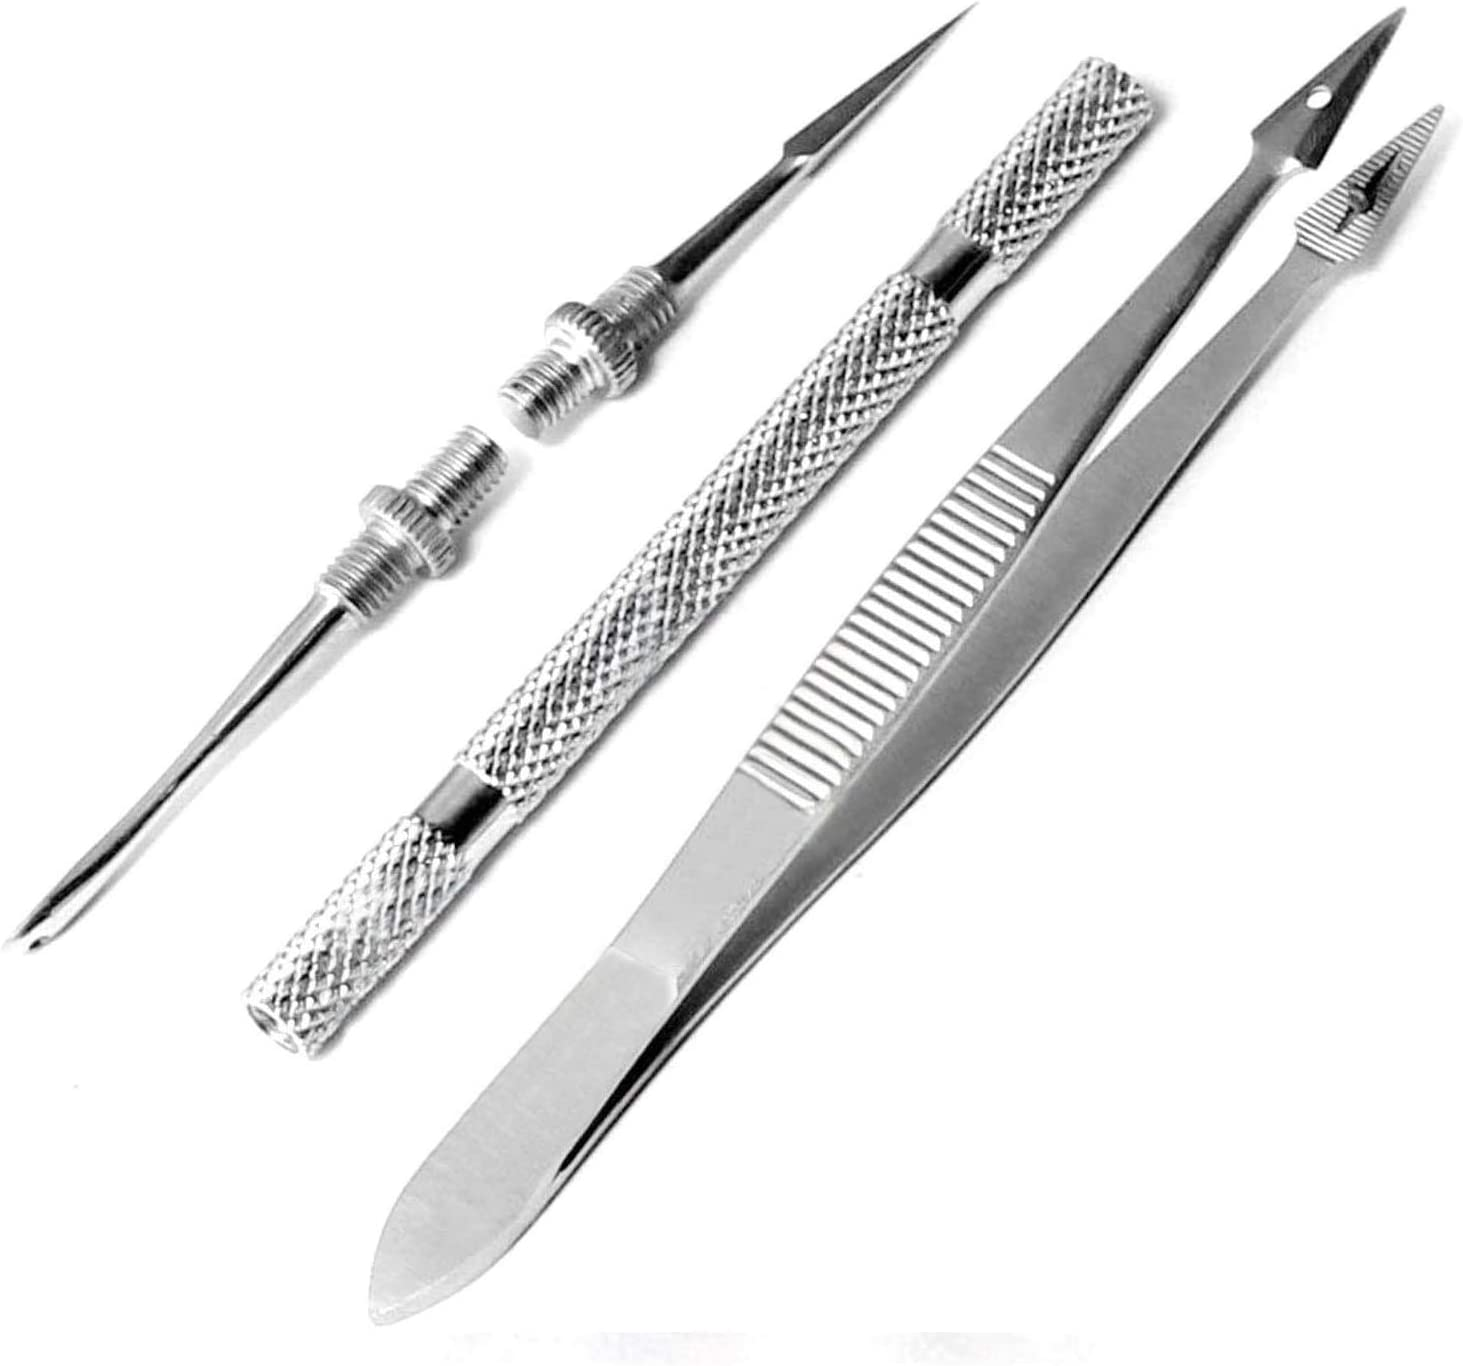 G.S Splinter Removal KIT EMS Forceps LIBERATOR Rapid San Jose Mall rise with